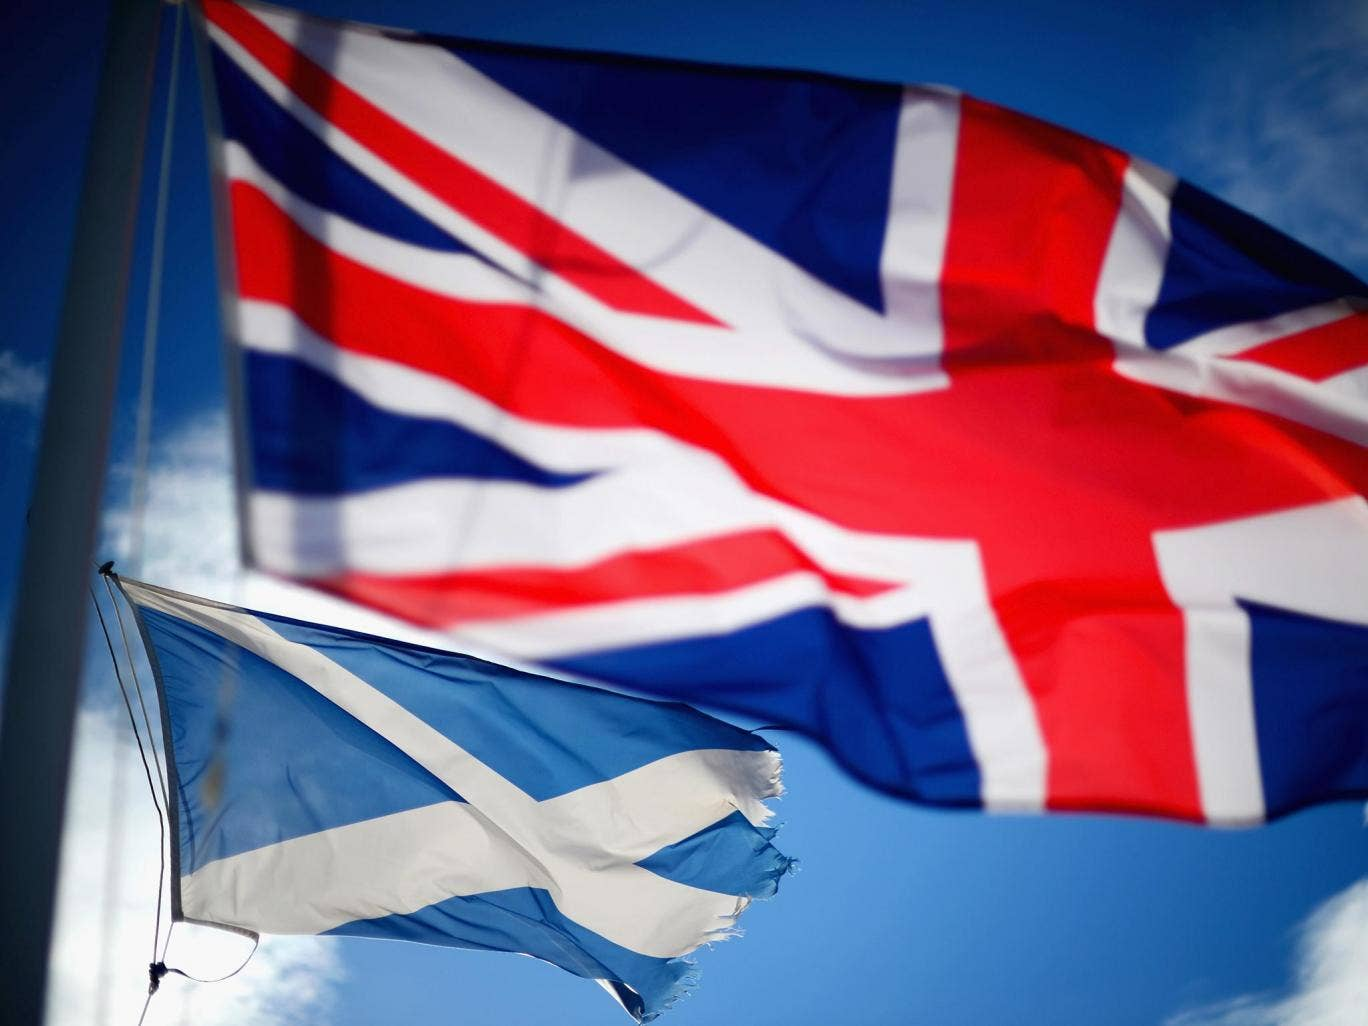 The majority of English and Welsh want Scotland to remain part of the United Kingdom